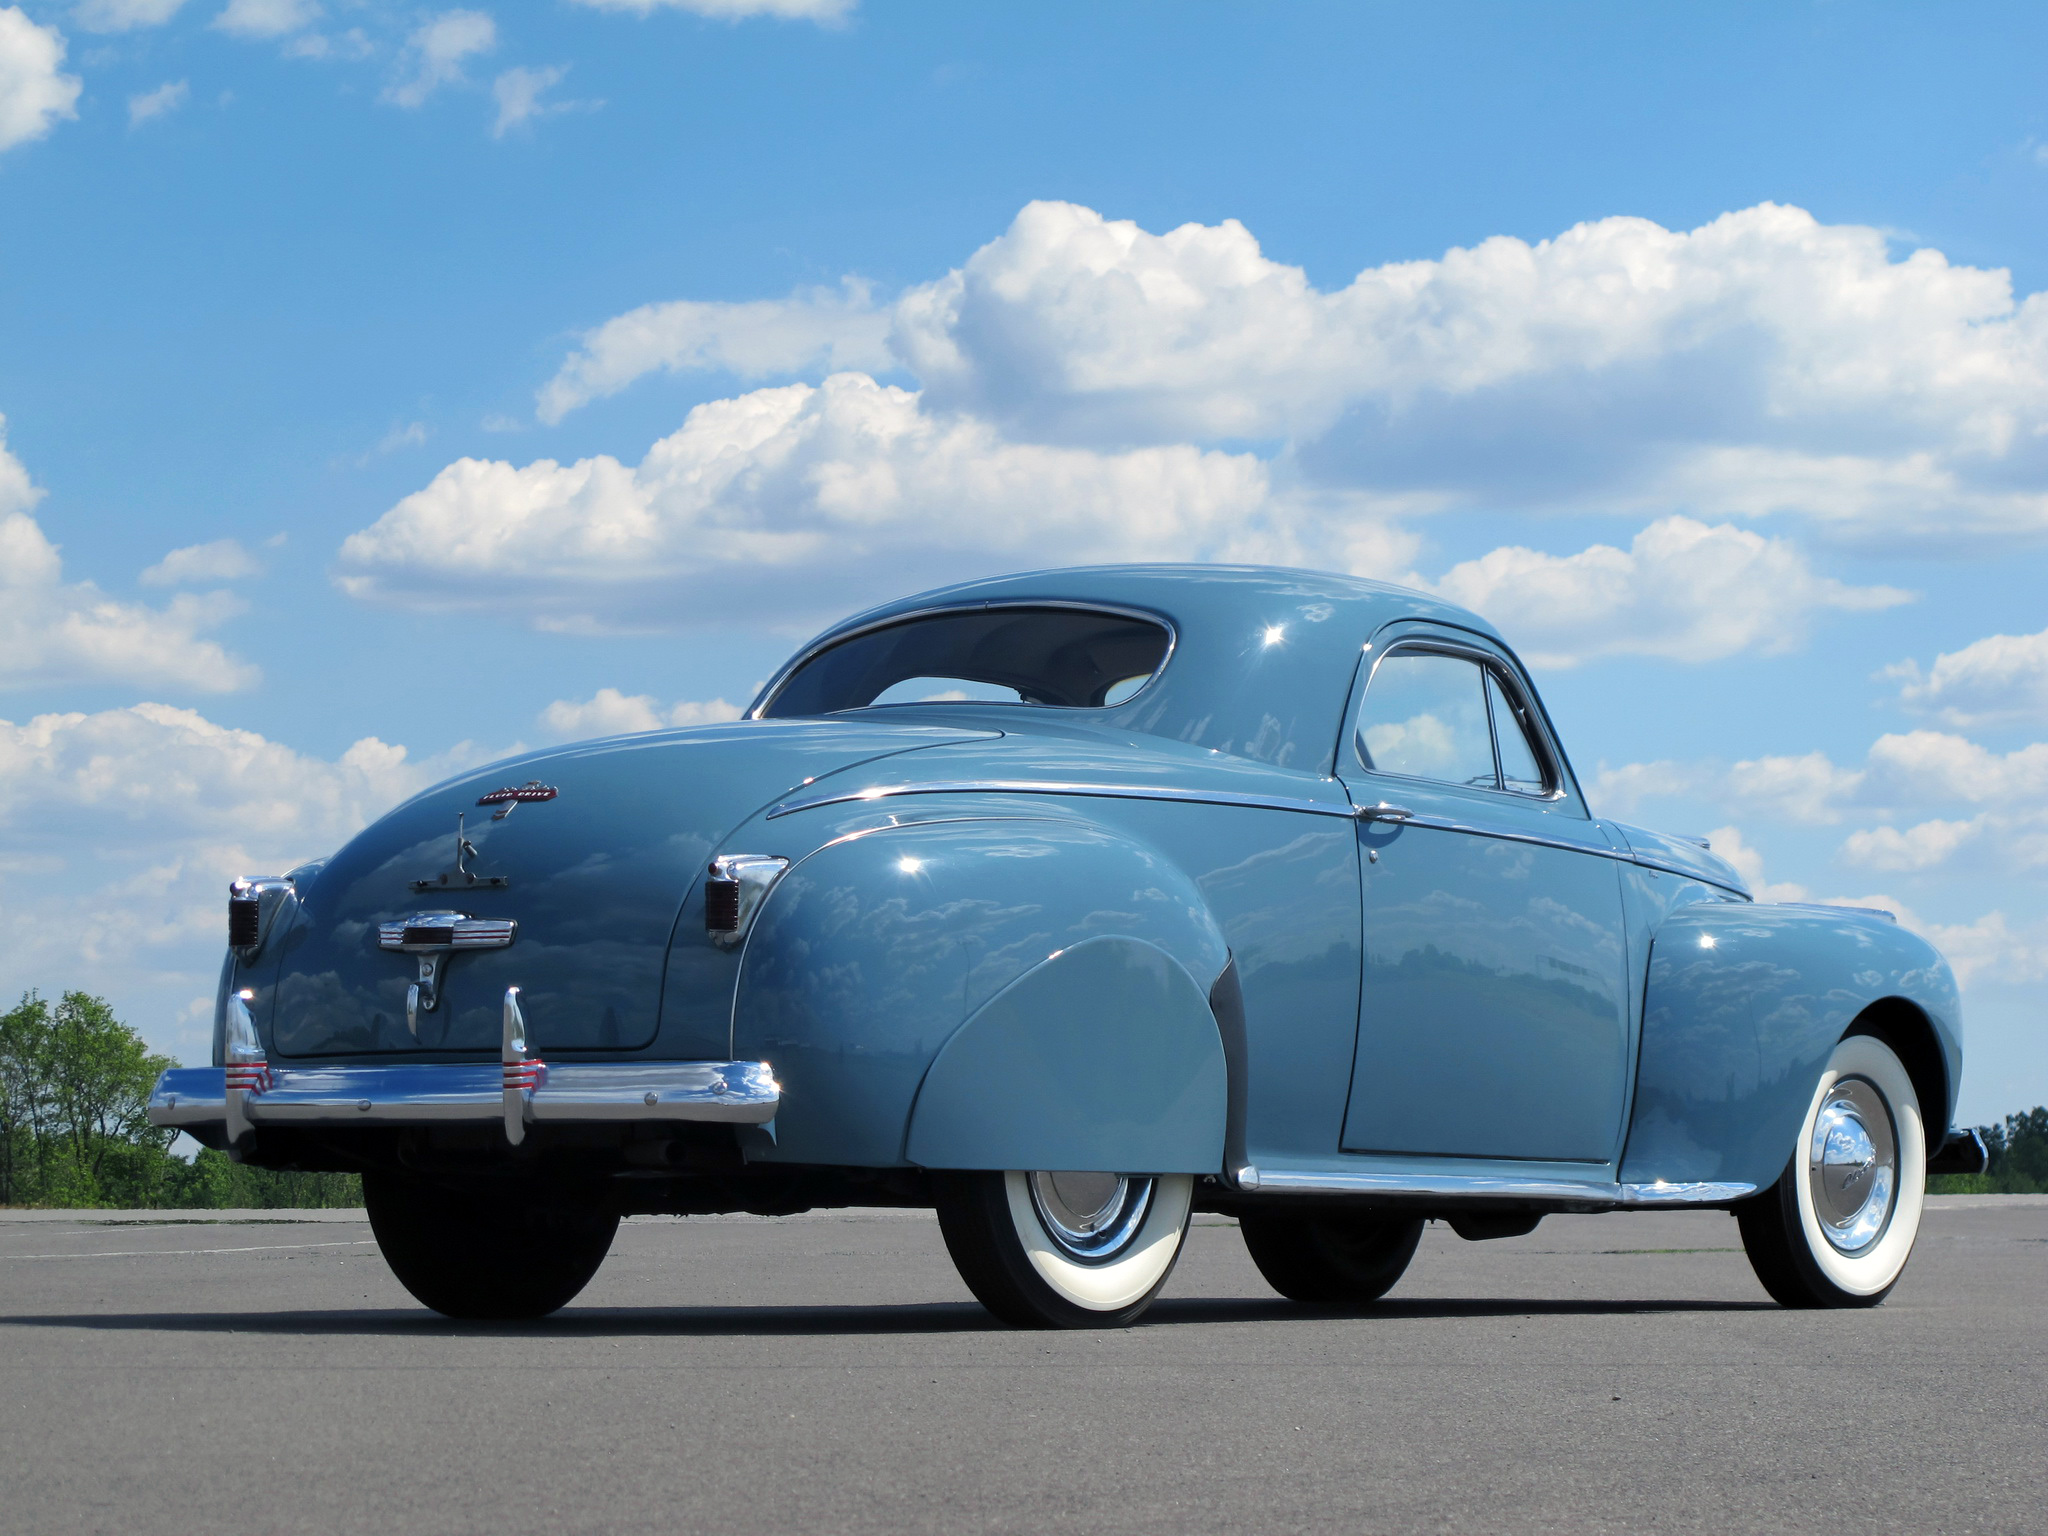 1941 chrysler royal coupe retro f wallpaper 2048x1536 for 1941 chrysler royal 3 window coupe